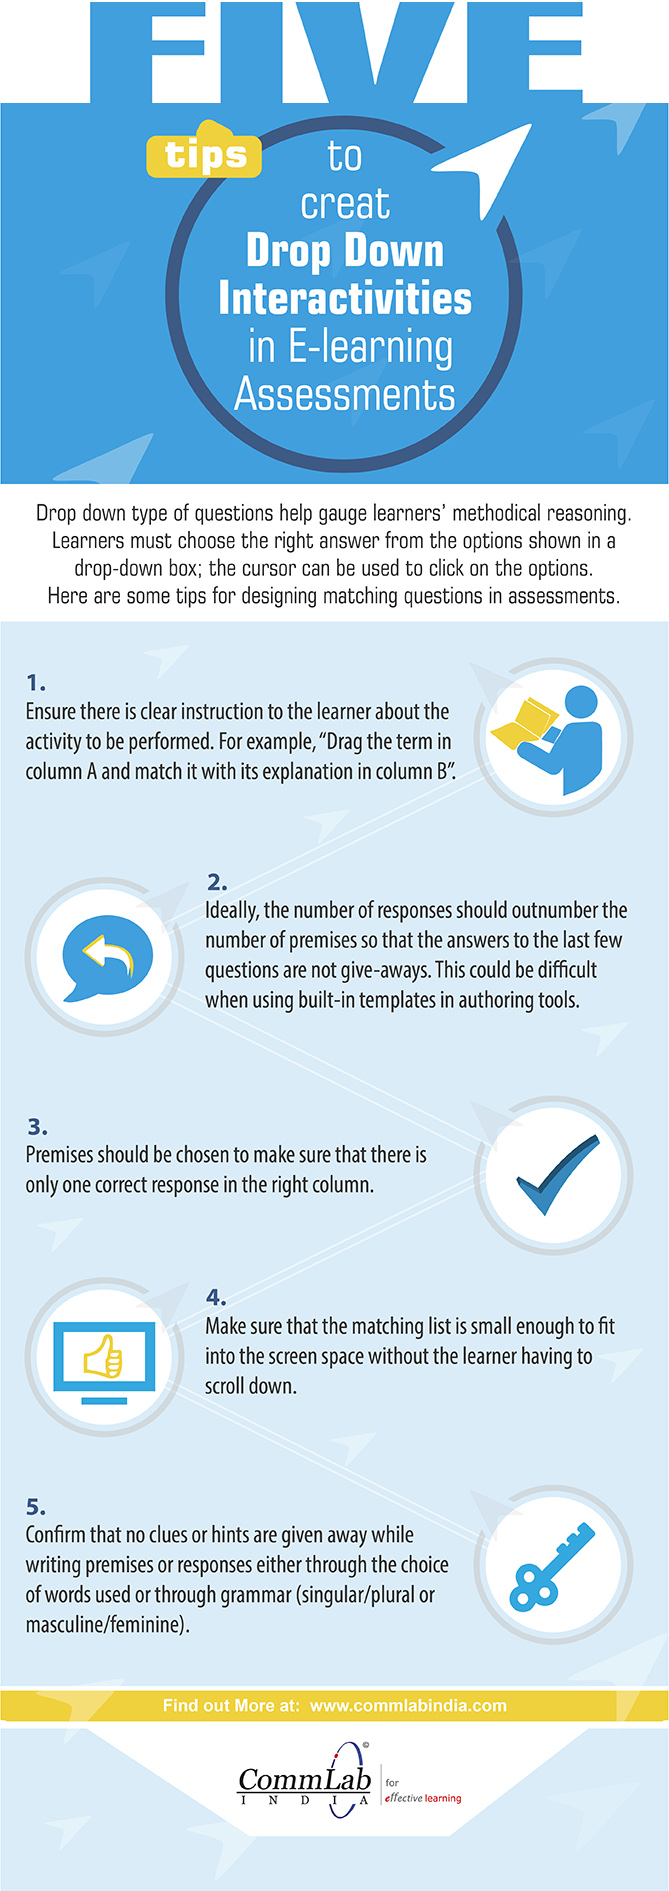 5 Tips to Create Drop Down Interactivities in E-learning Assessments - An Infographic